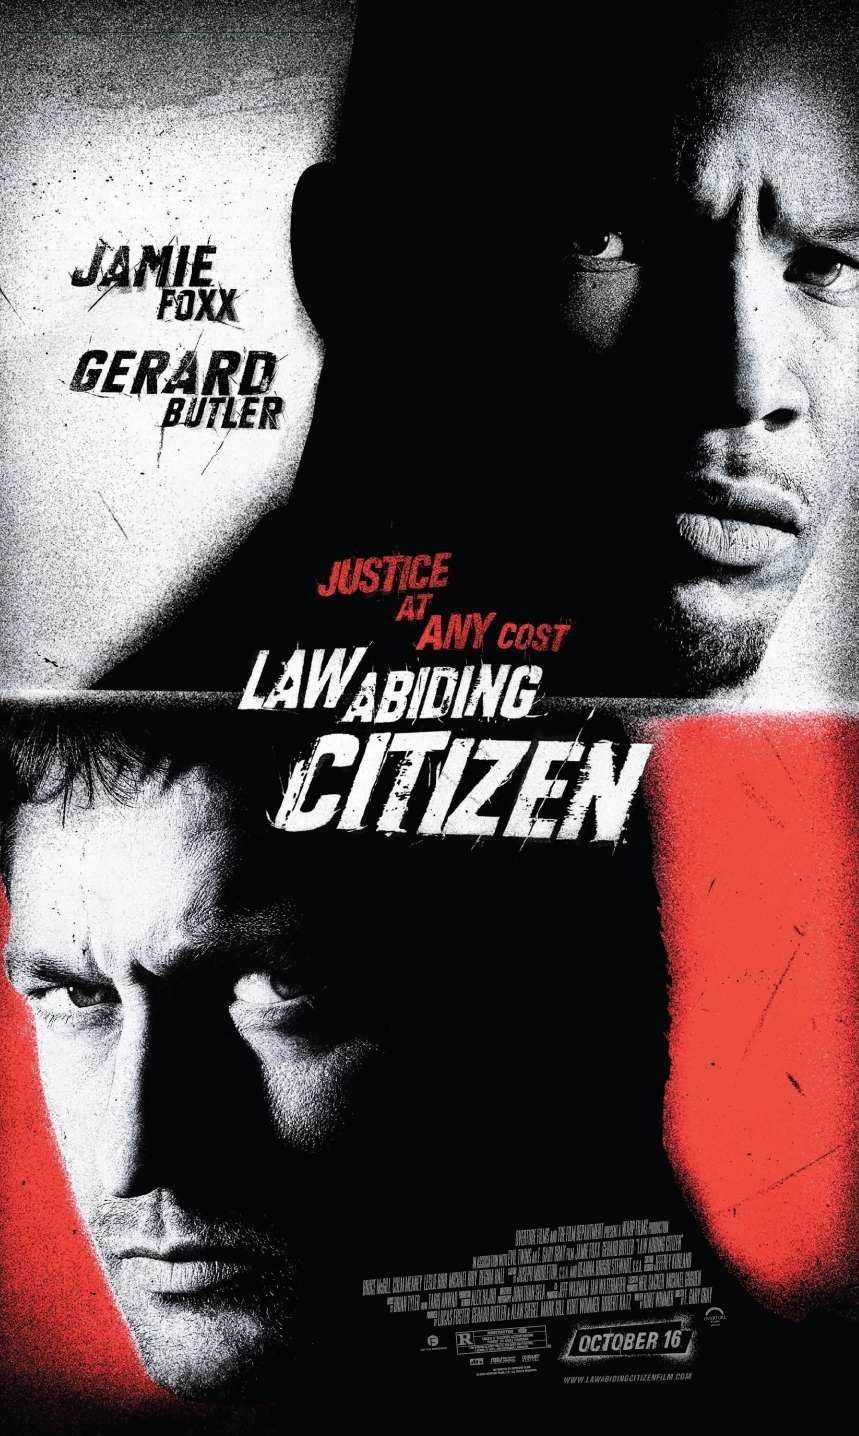 Law Abiding Citizen (2009) Unrated DC (Hindi + English) Dual Audio Bluray 480p 720p x264 | 1080p Hevc 10bit